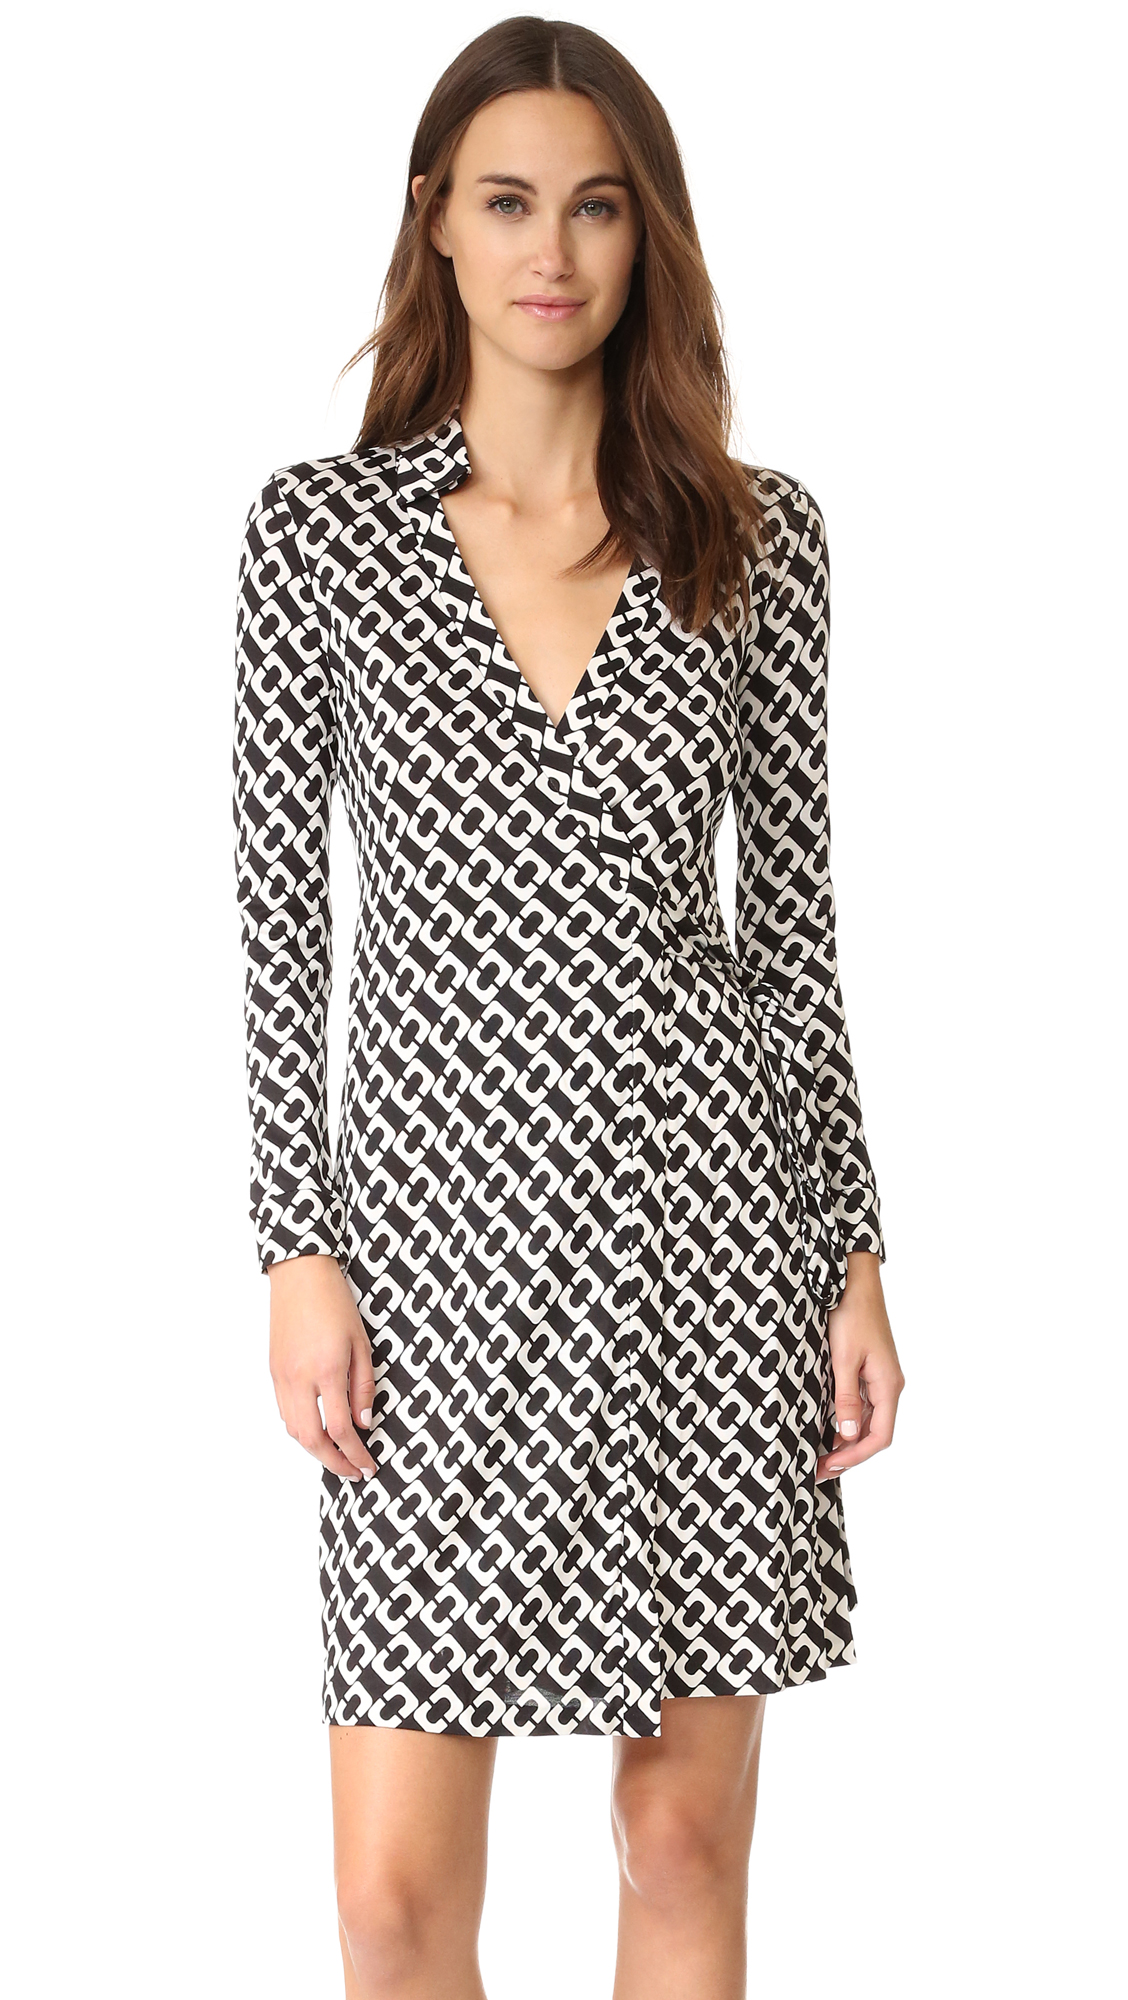 Diane von furstenberg dresses and clothing cj online stores for Diane von furstenberg clothes